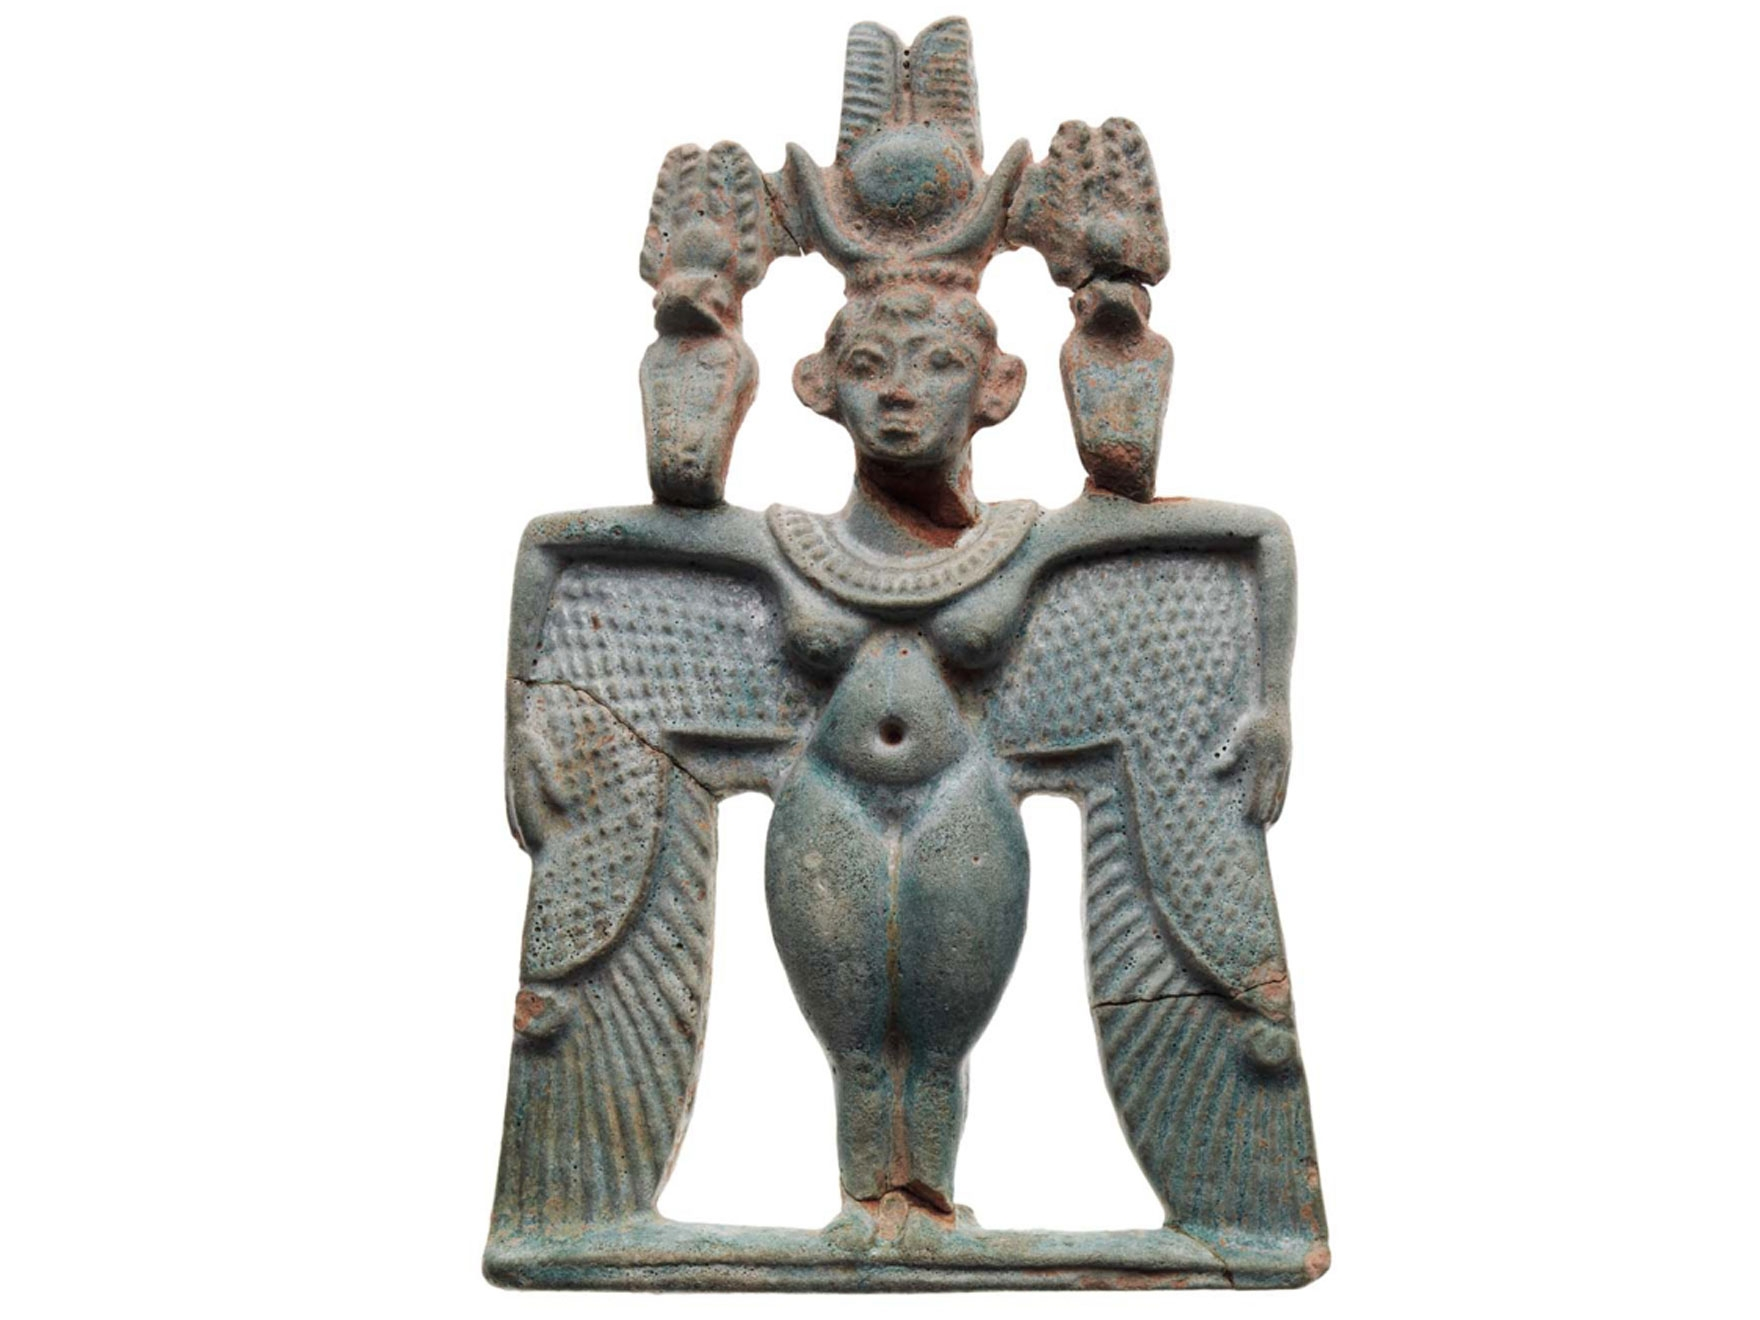 Nubian period pectoral representing a winged goddess